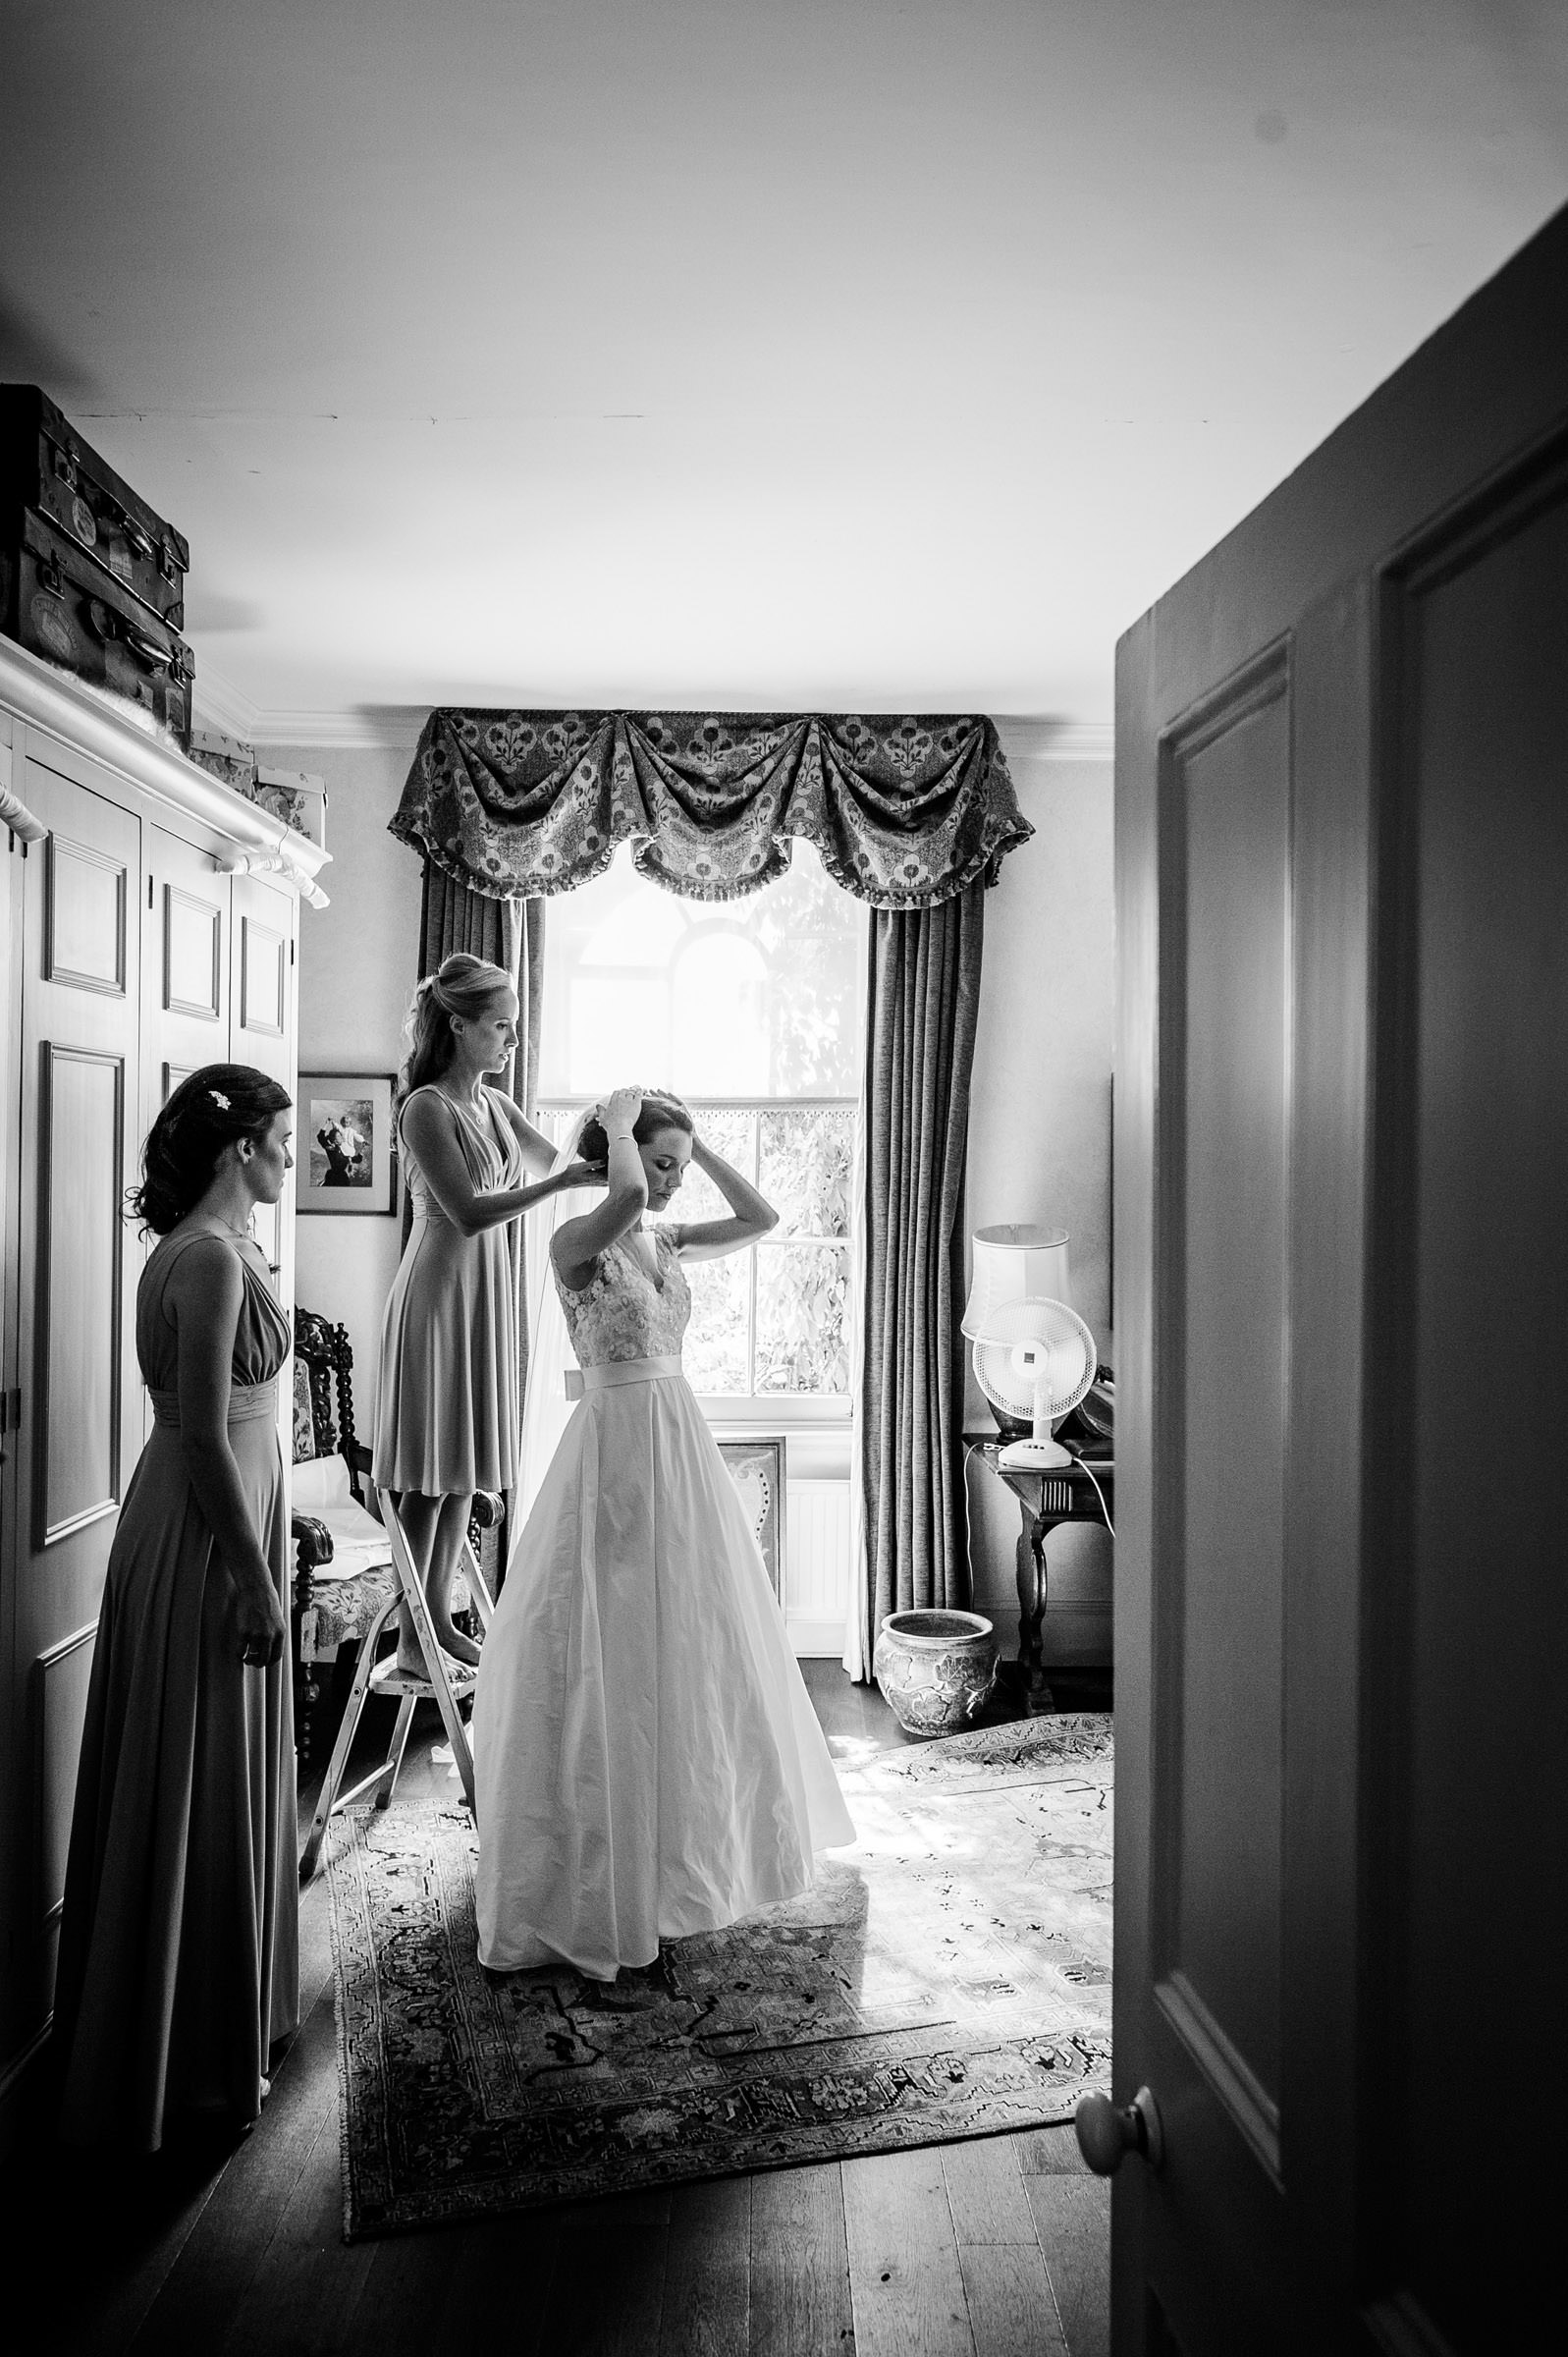 Kensington Palace Wedding Photography 022.jpg